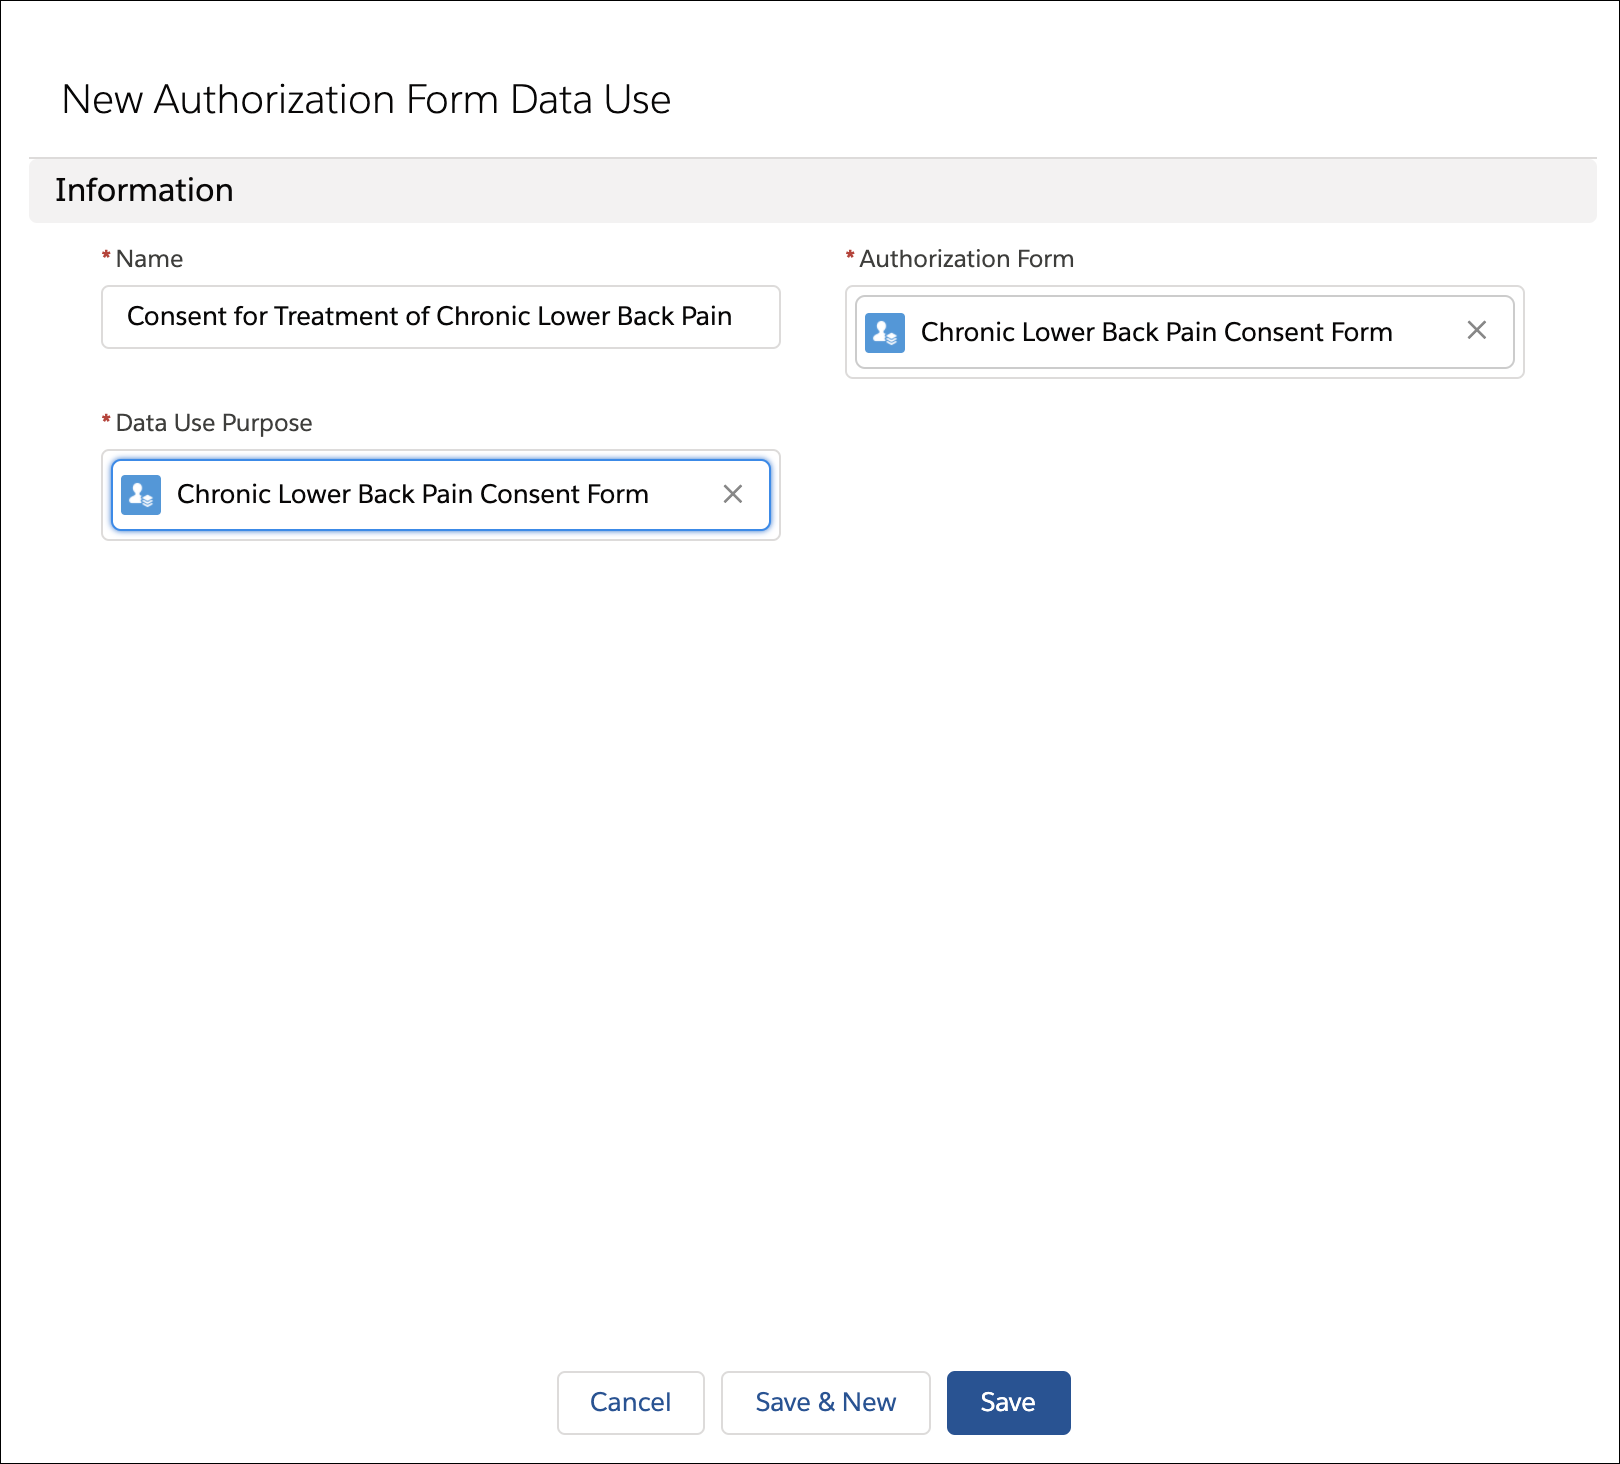 New Authorization Data From Use page where you connect the consent form with the care program.